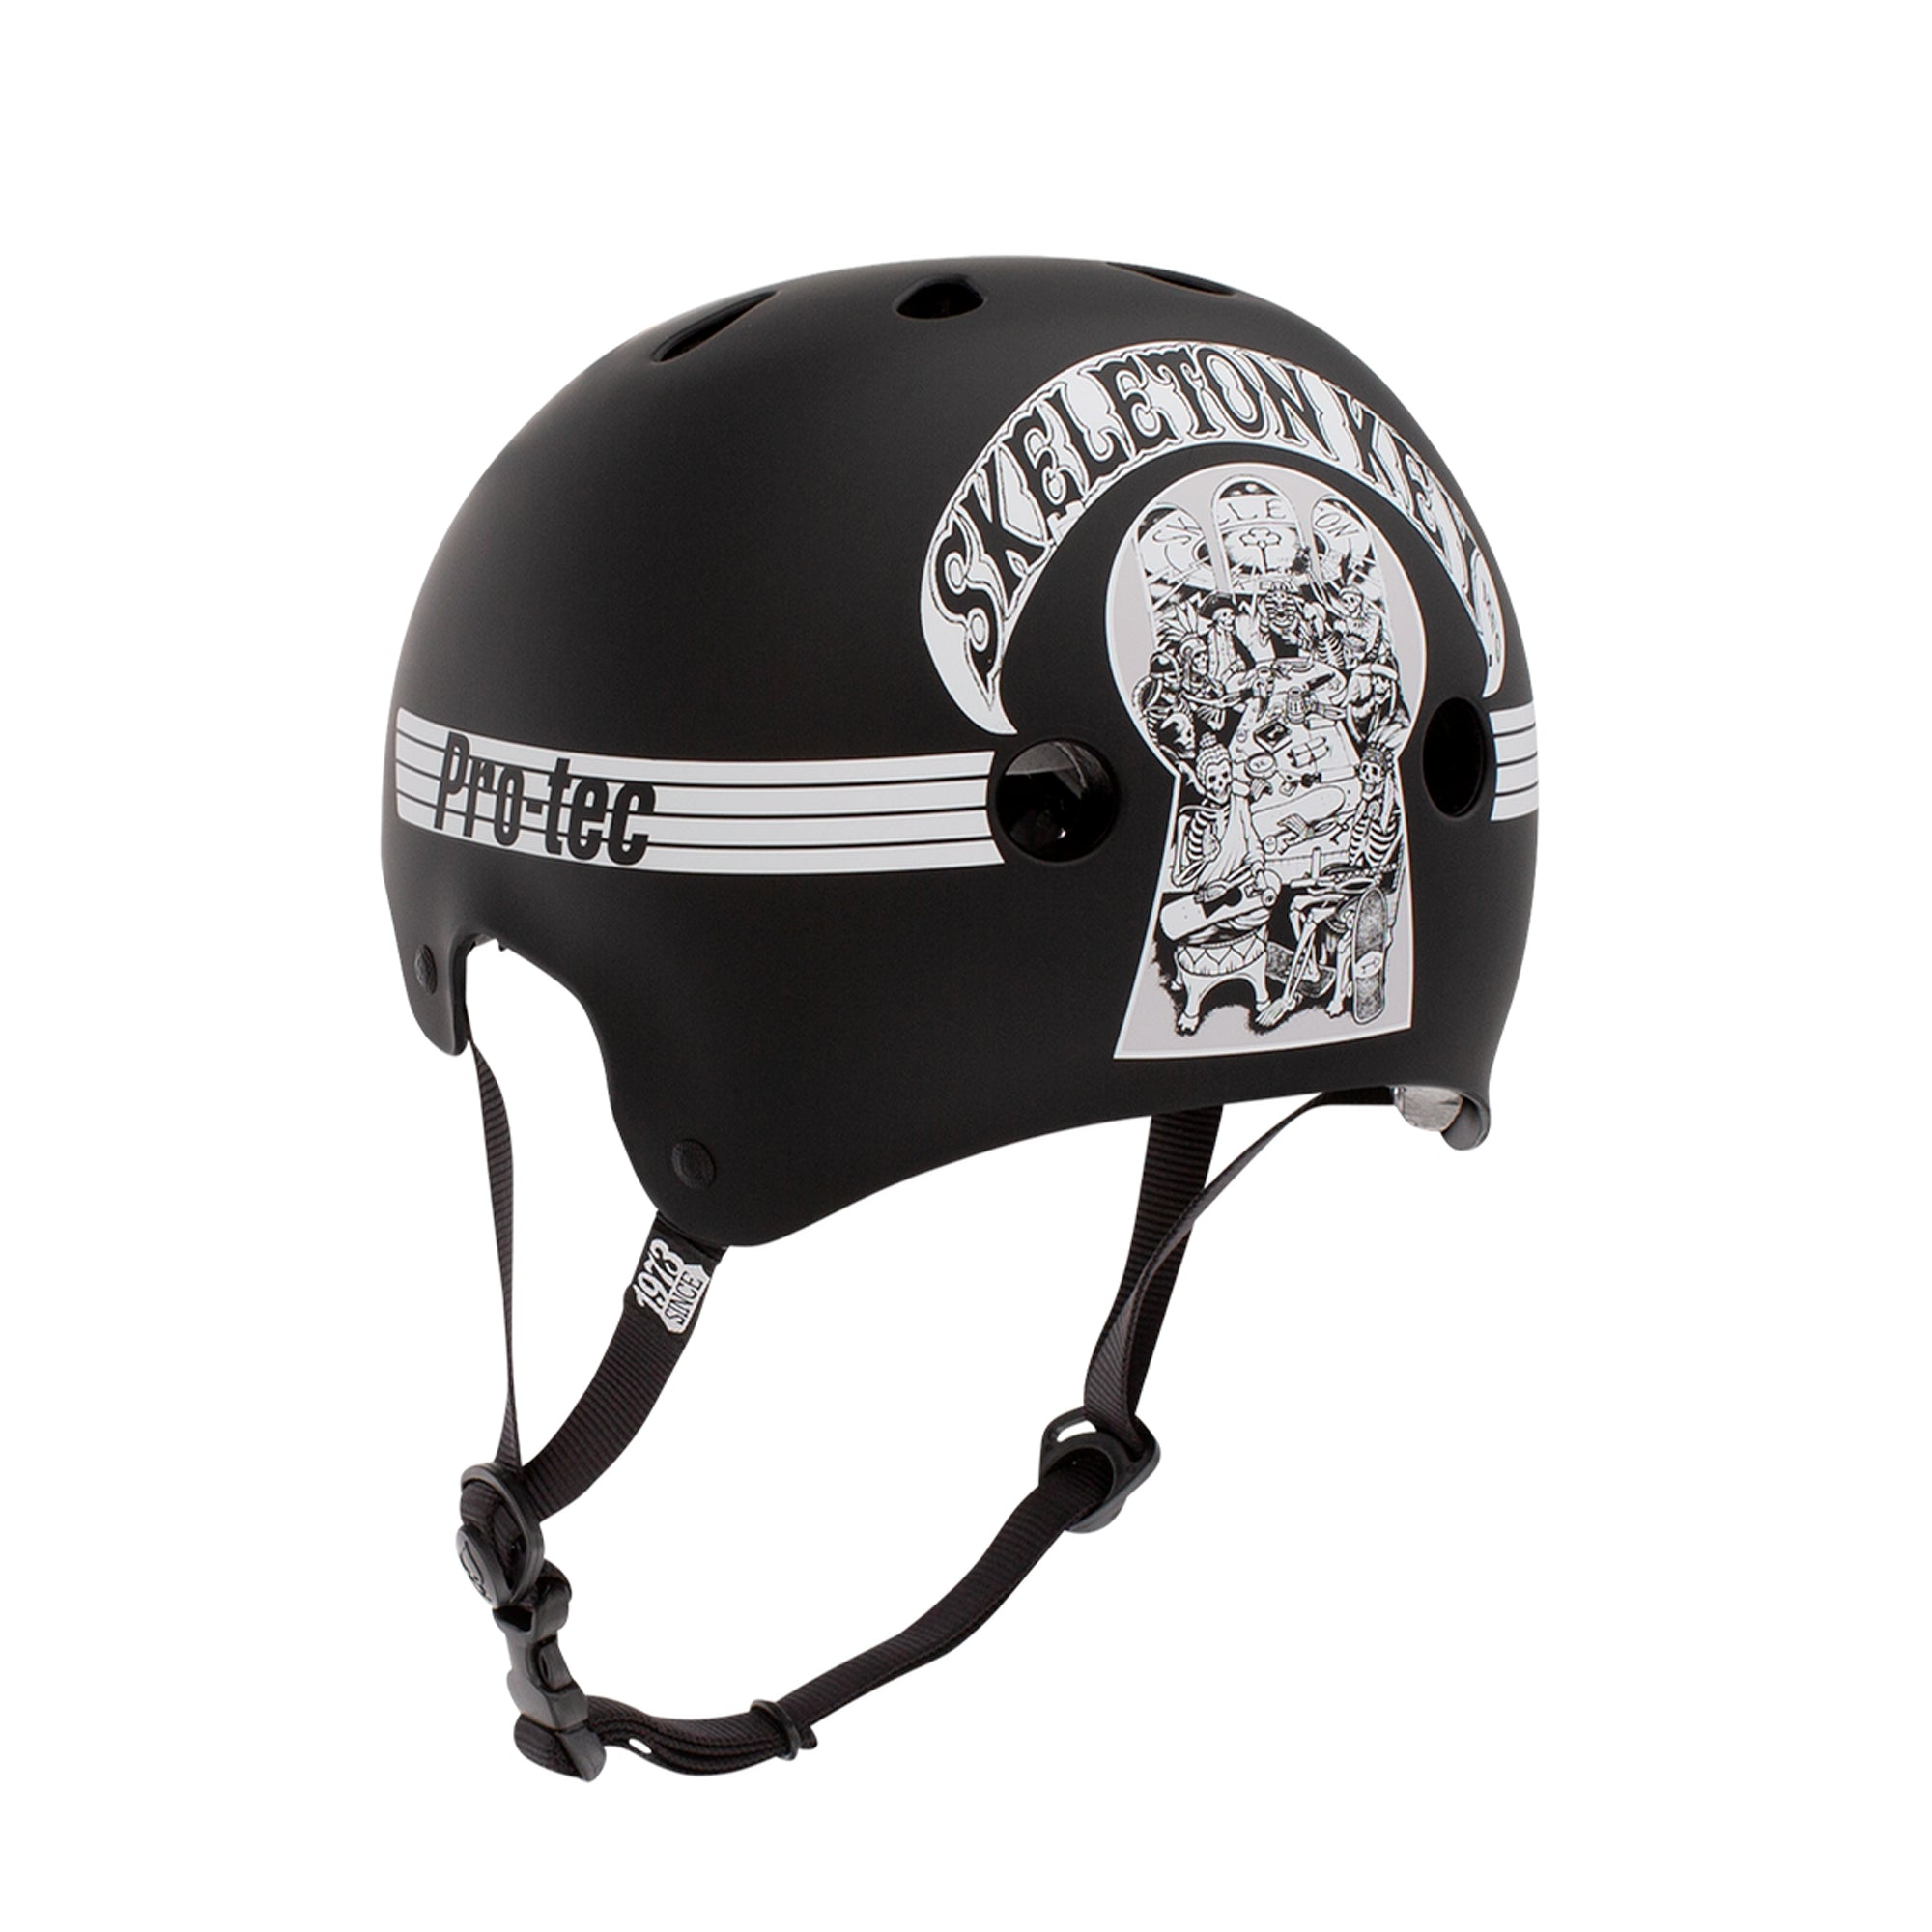 Pro-Tec Classic Old School Skate Helmet Skeleton Key - Black/White